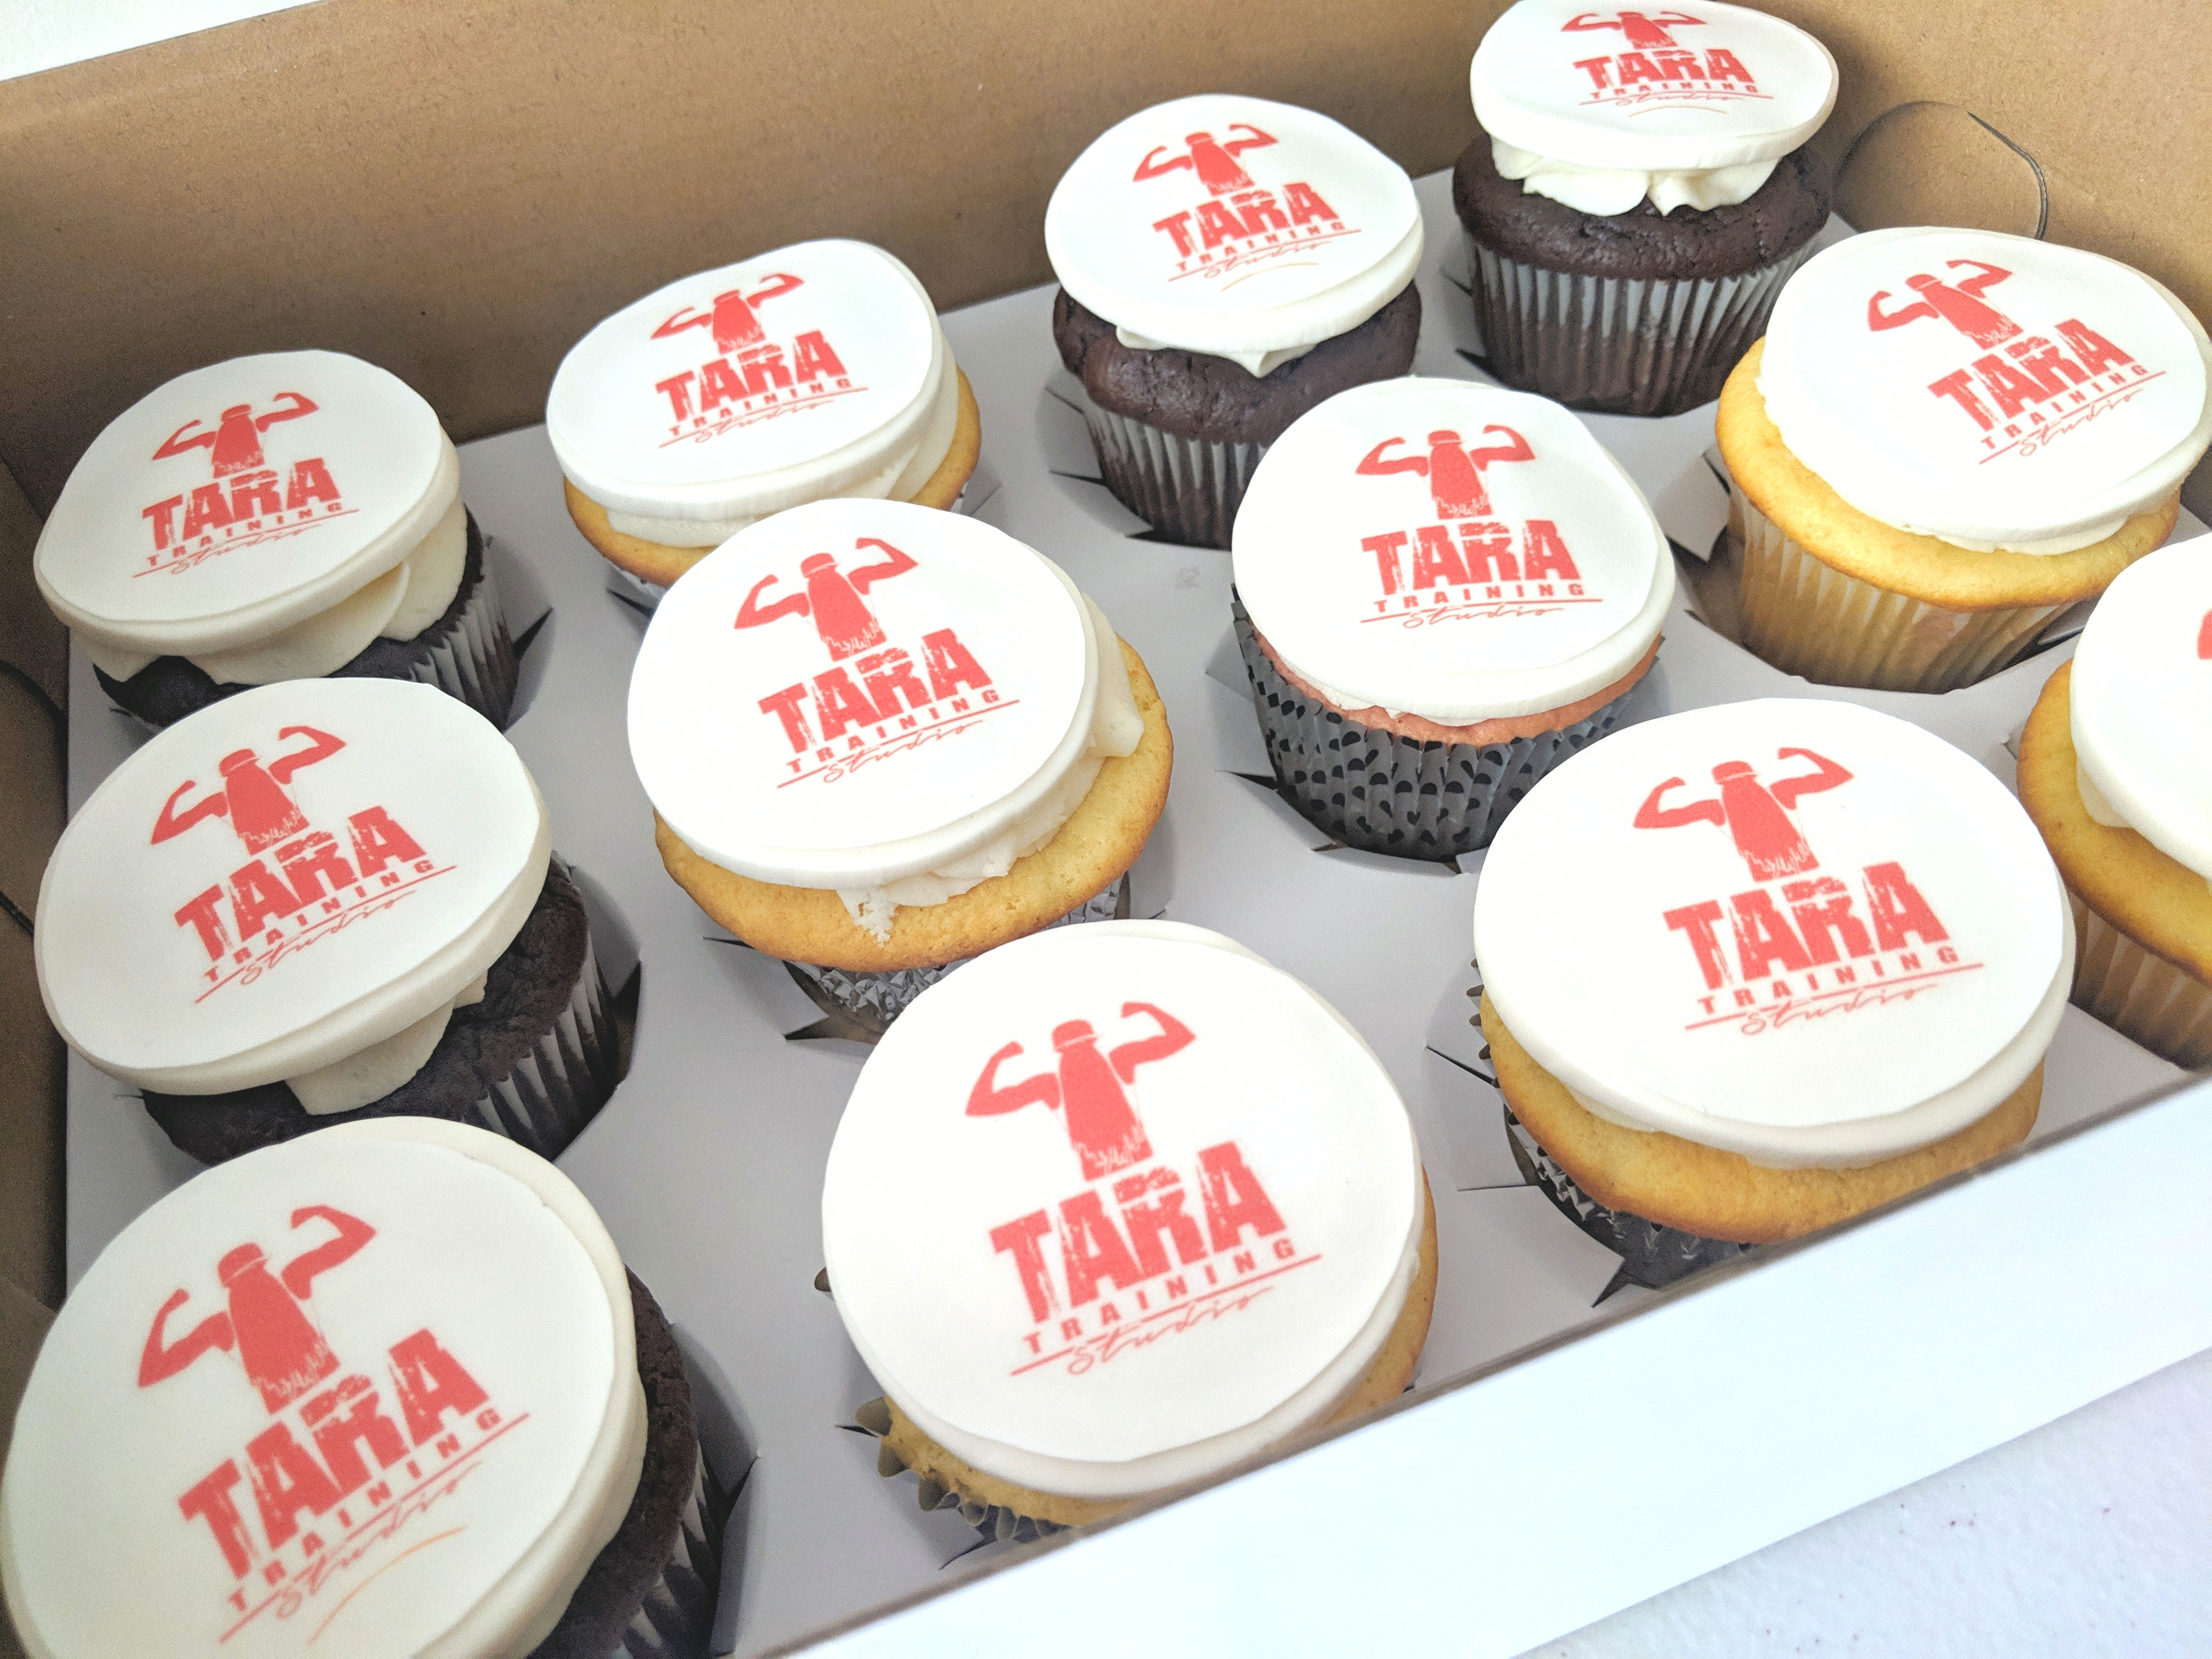 Tara Training Fitness Studio